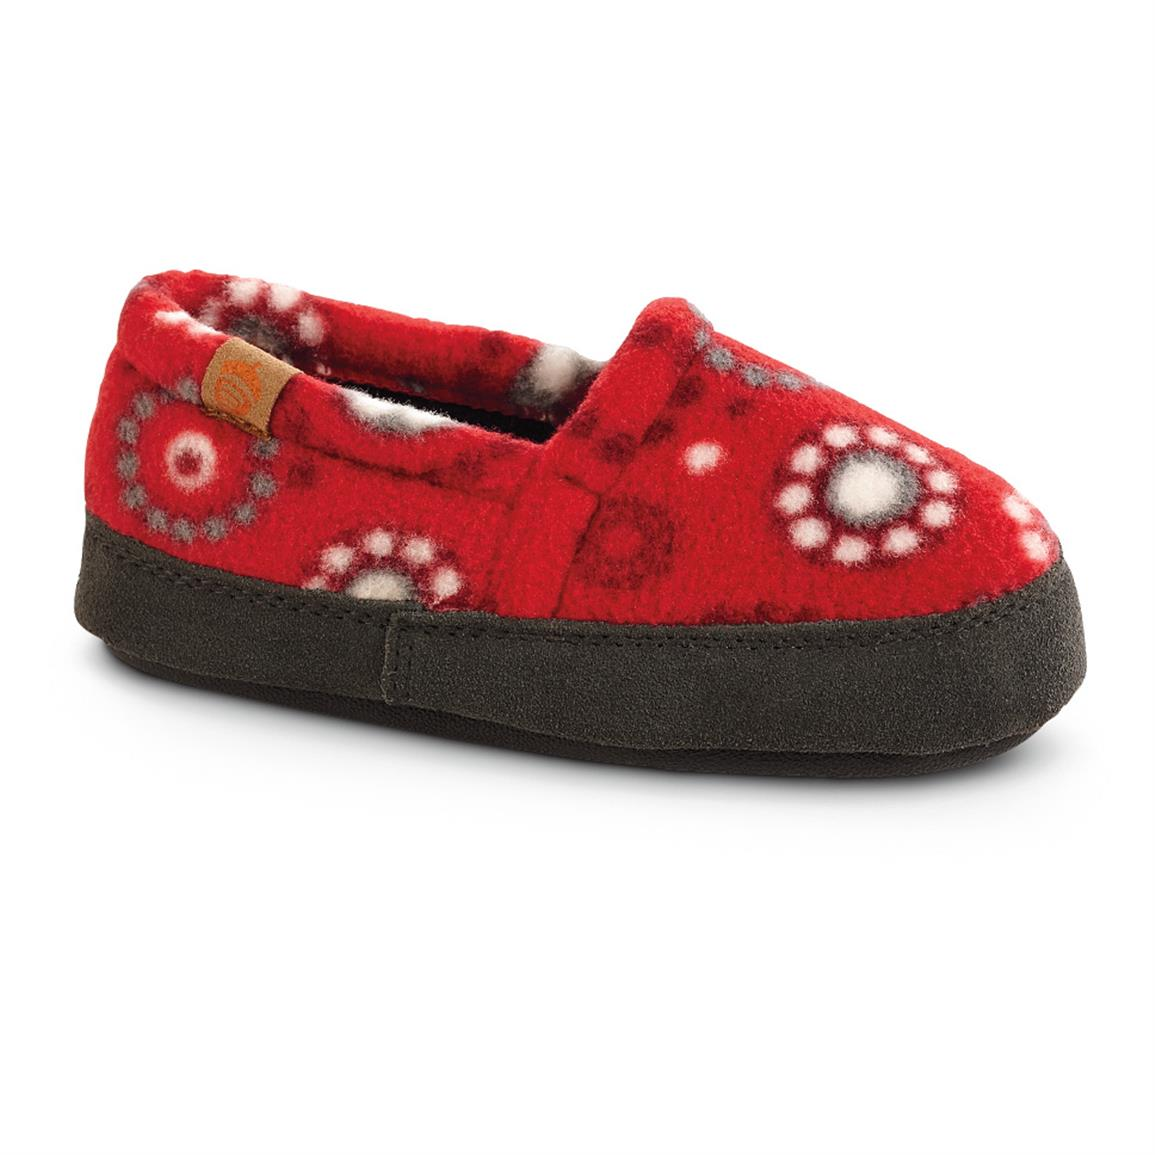 Acorn Kid's Moc Slippers, Red Dots